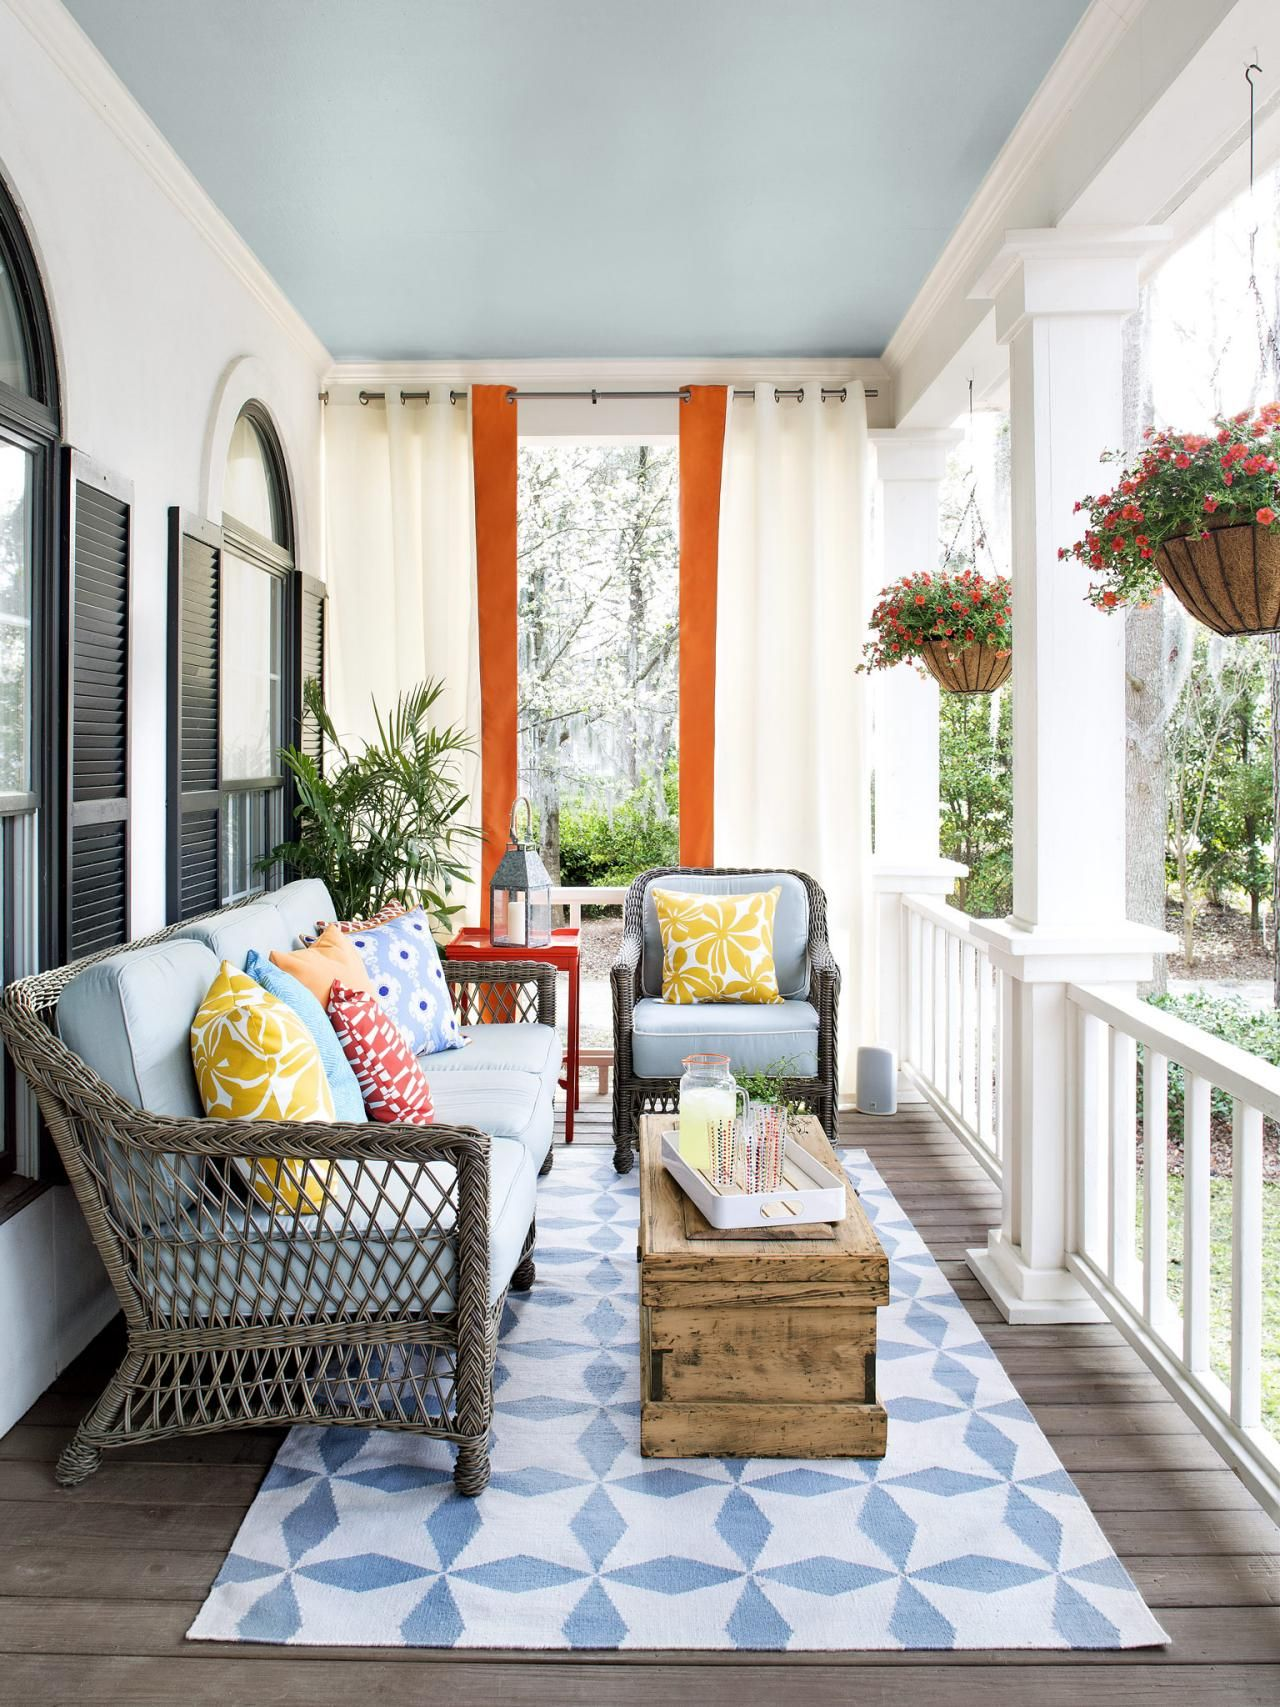 Decorating With Front Porch Furniture Ideas